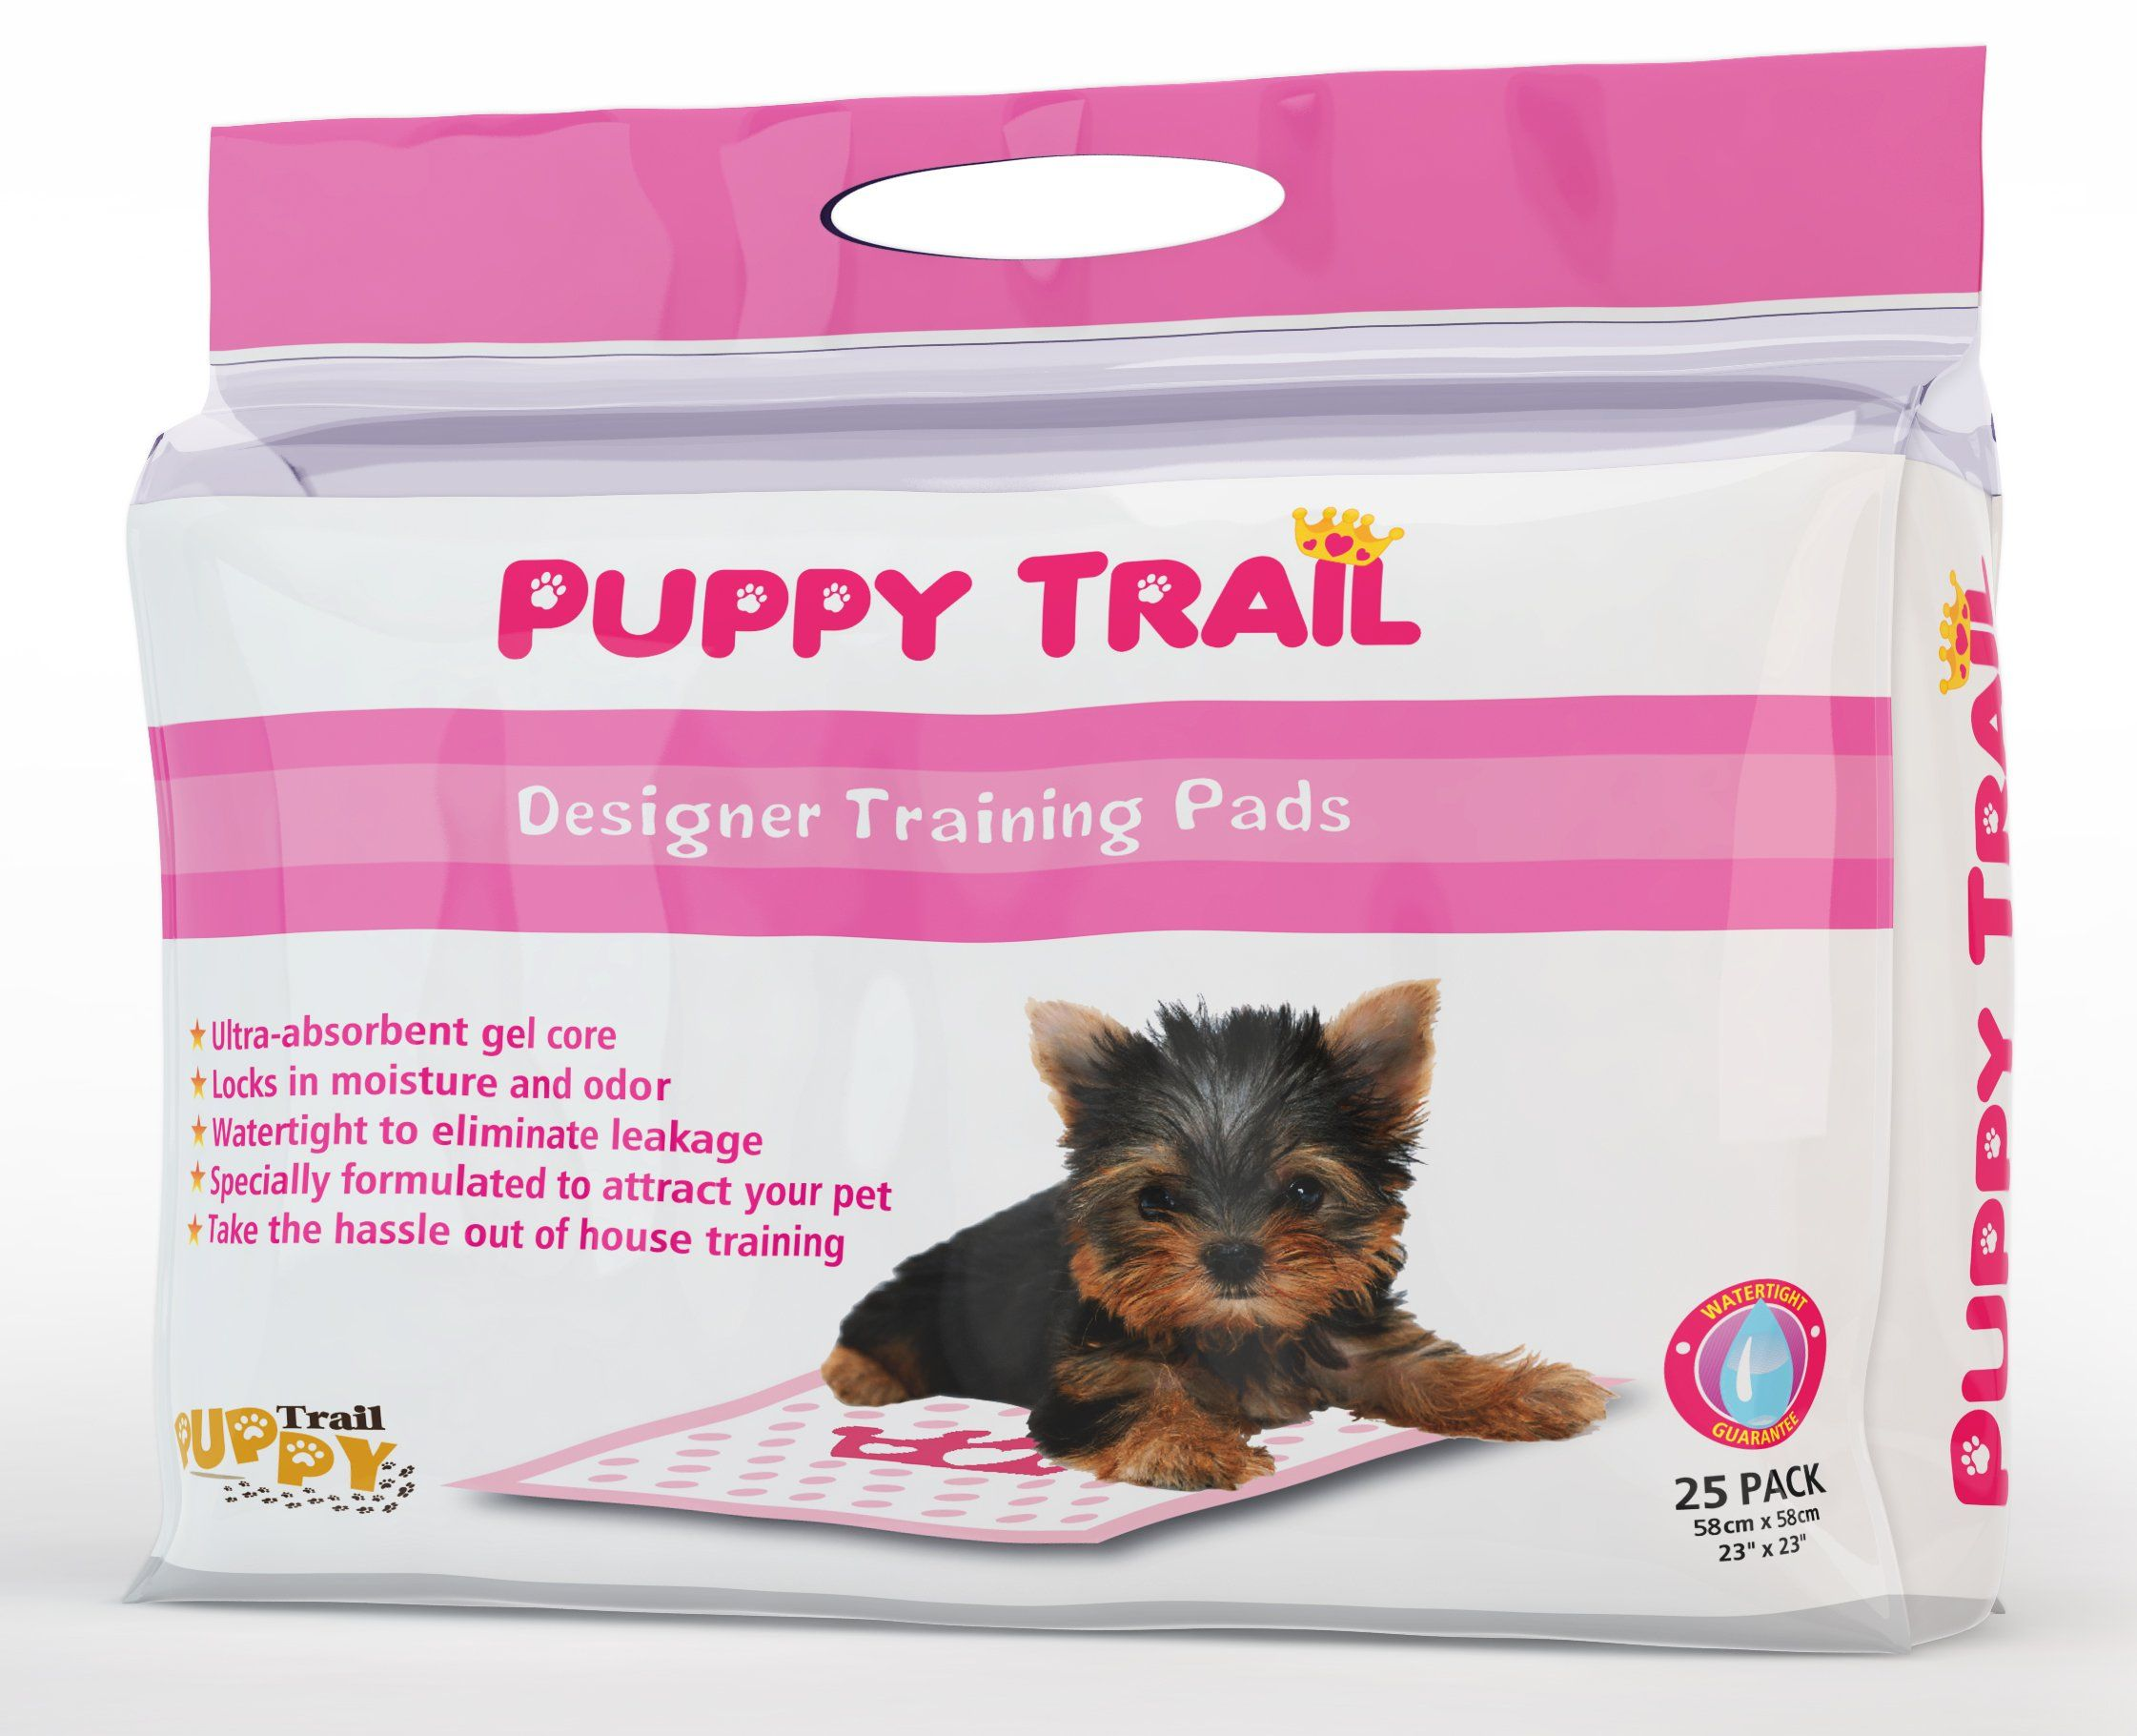 Cute Stuff And Yes These Pads Work Well As Potty Pads But So Do The Blue Kind I Ve Tried I Keep These Back To Puppy Pads Training Puppy Training Puppy